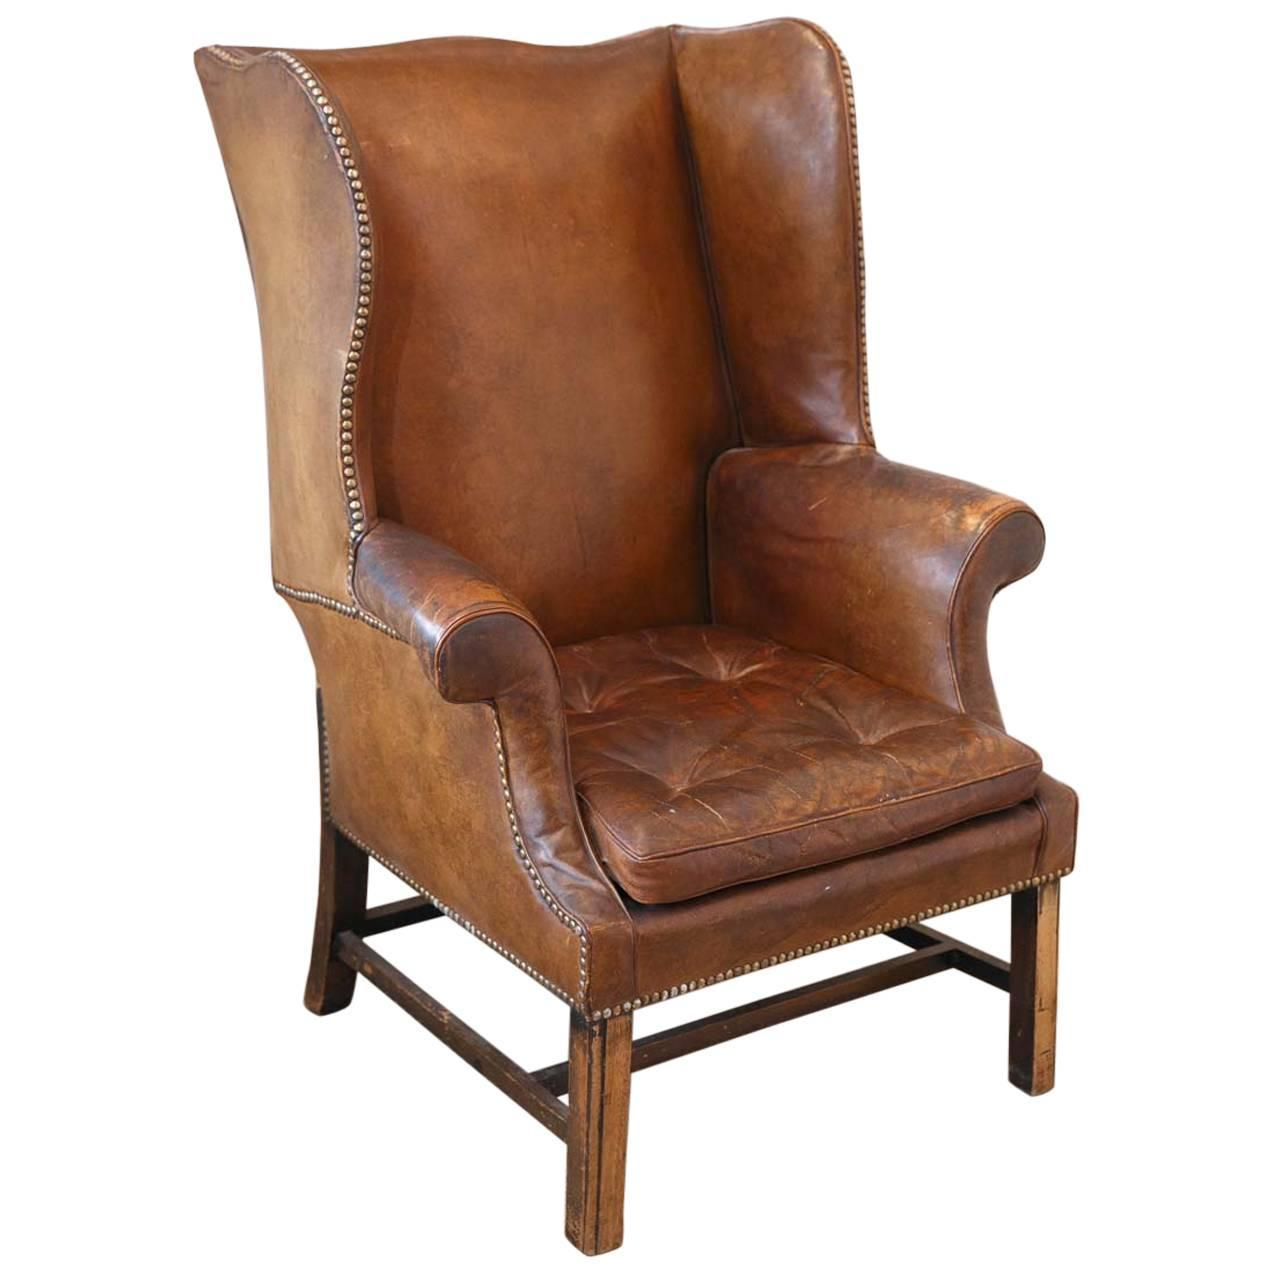 Incroyable French Leather Wingback Chair From The 1920s At 1stdibs